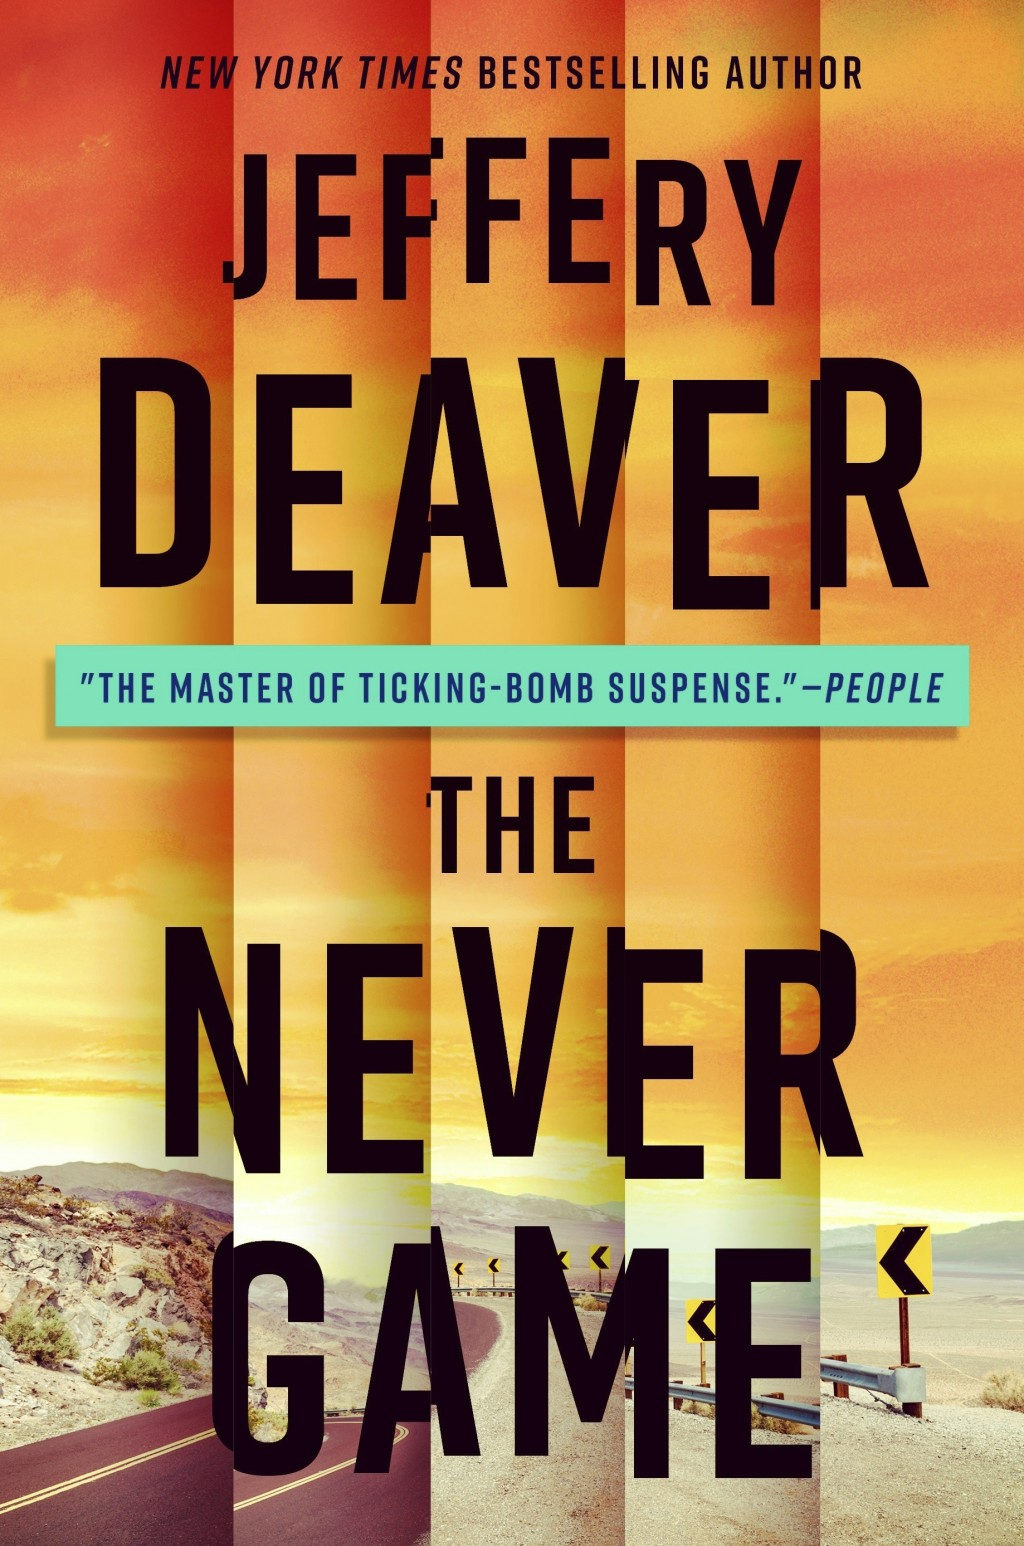 """This cover image released by G.P. Putnam's Sons shows """"The Never Game"""" by Jeffery Deaver. (G.P. Putnam's Sons via AP)"""